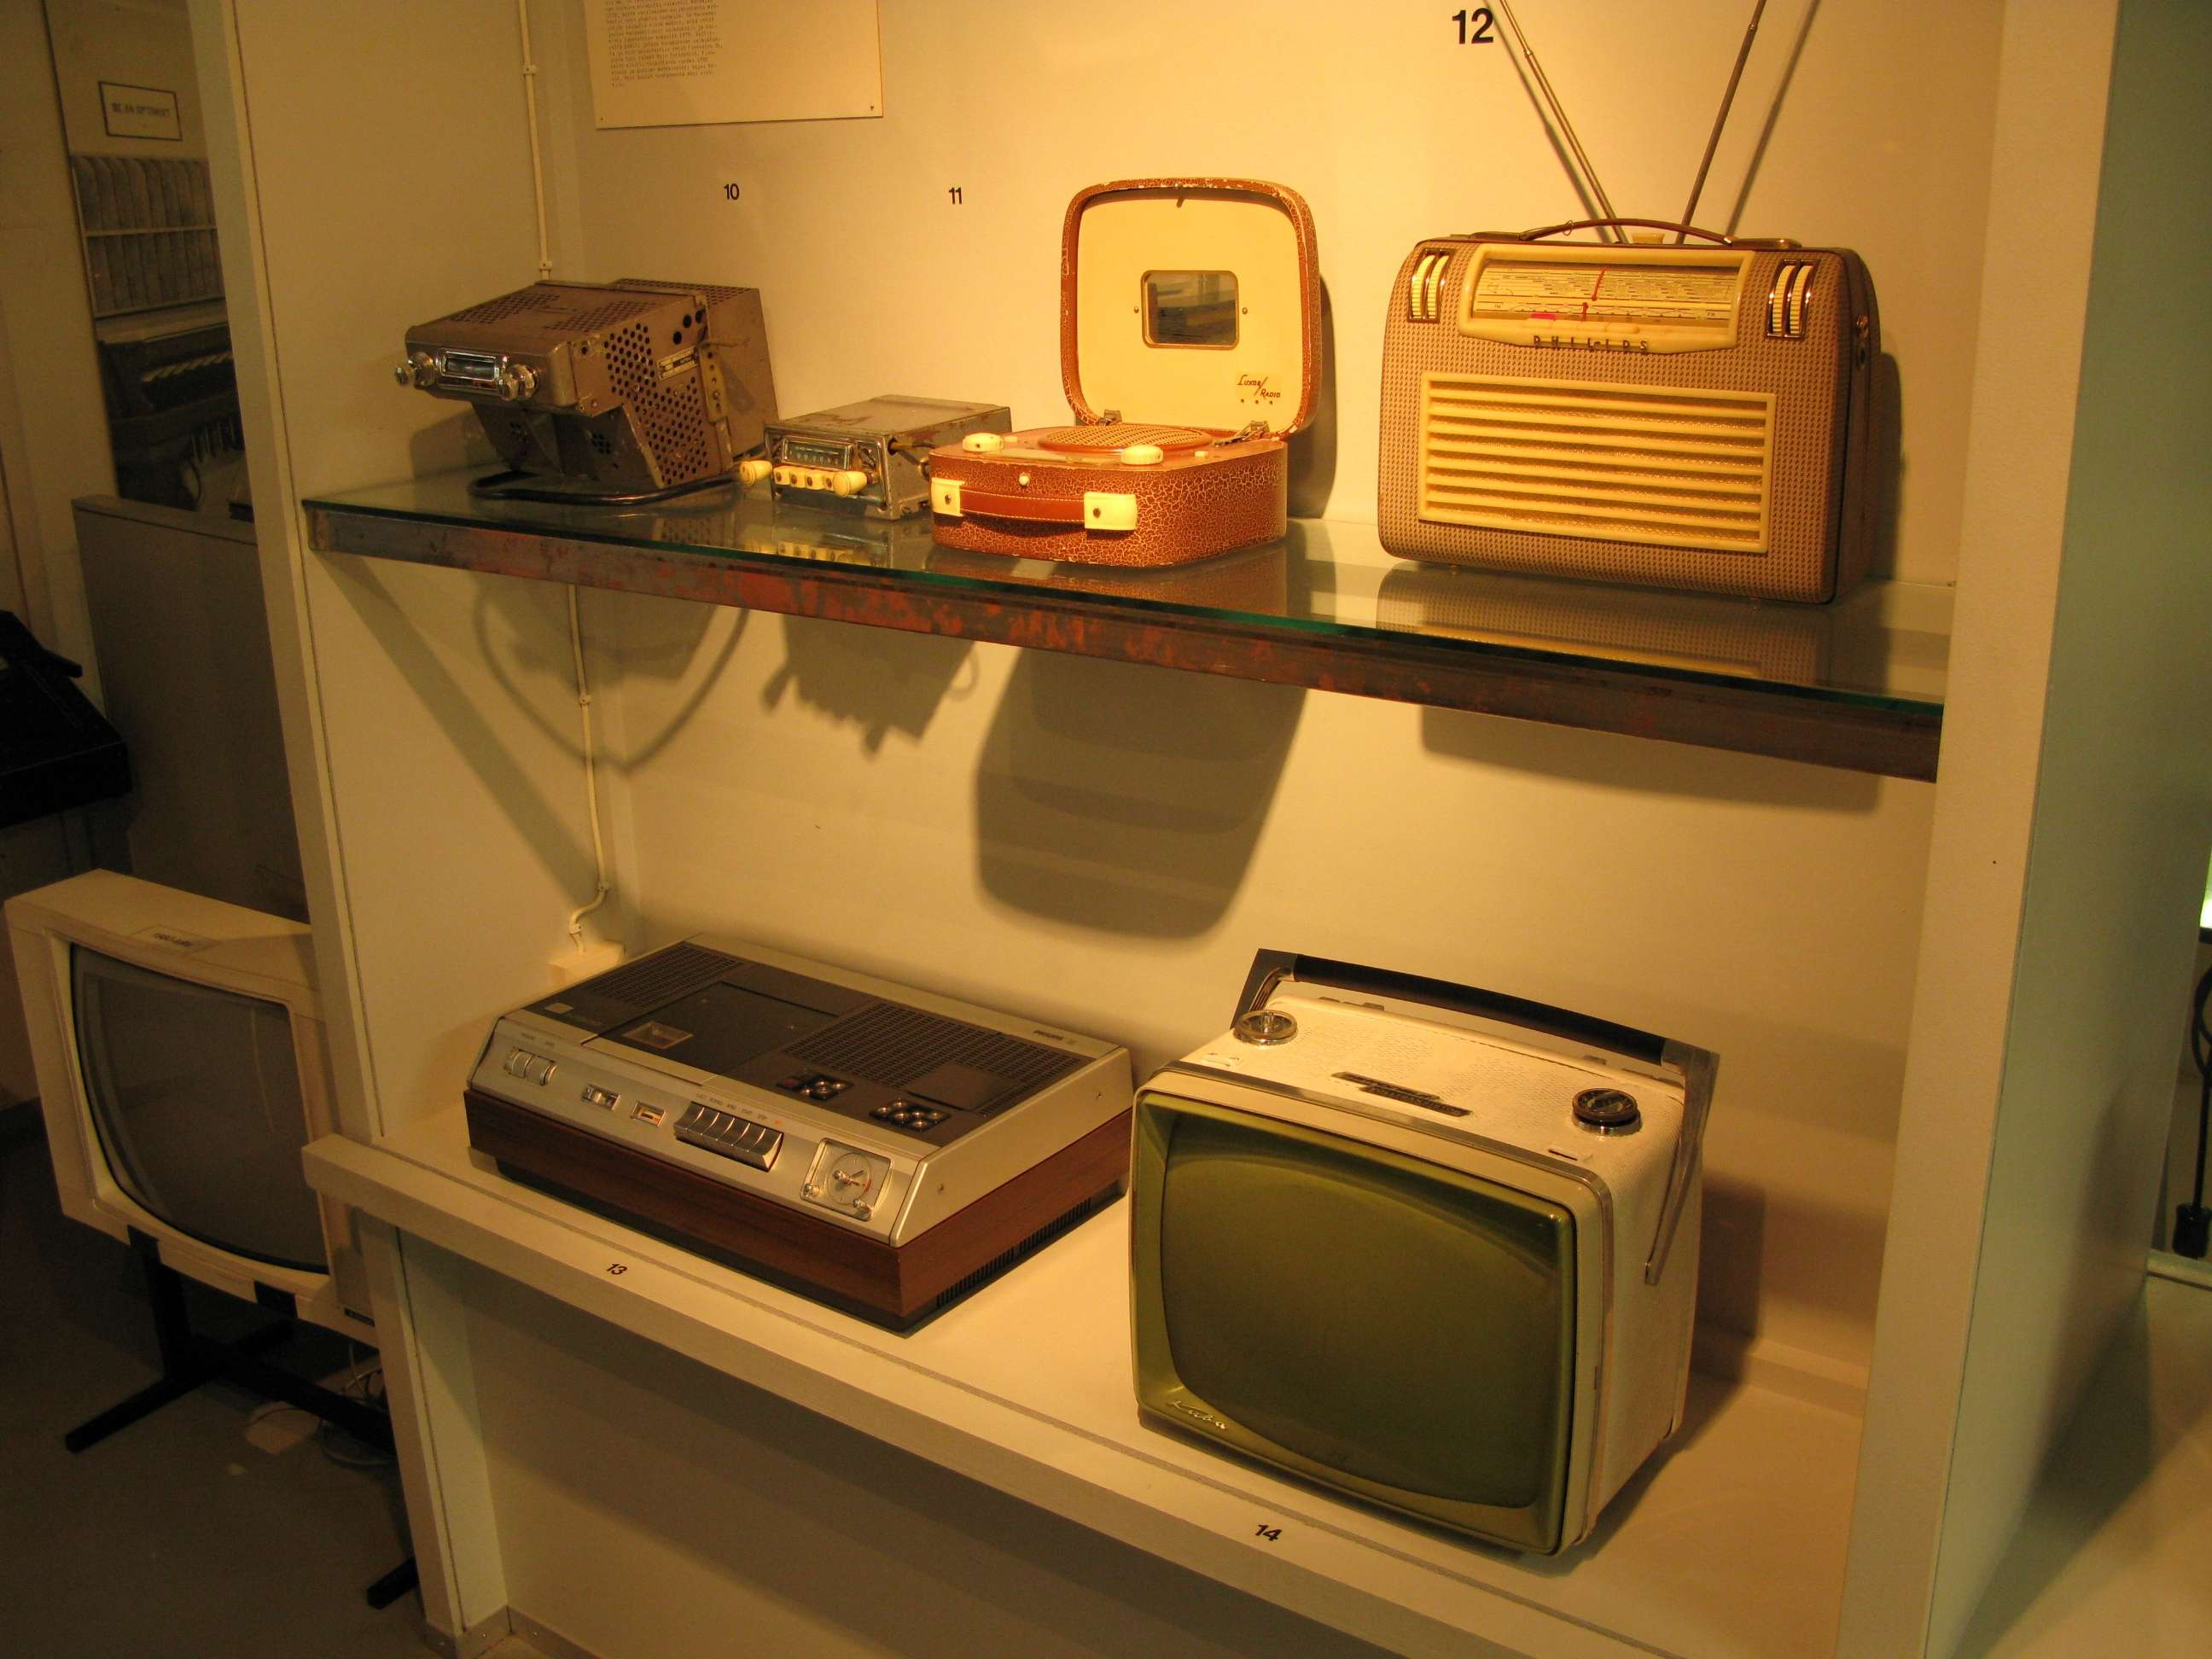 old appliances